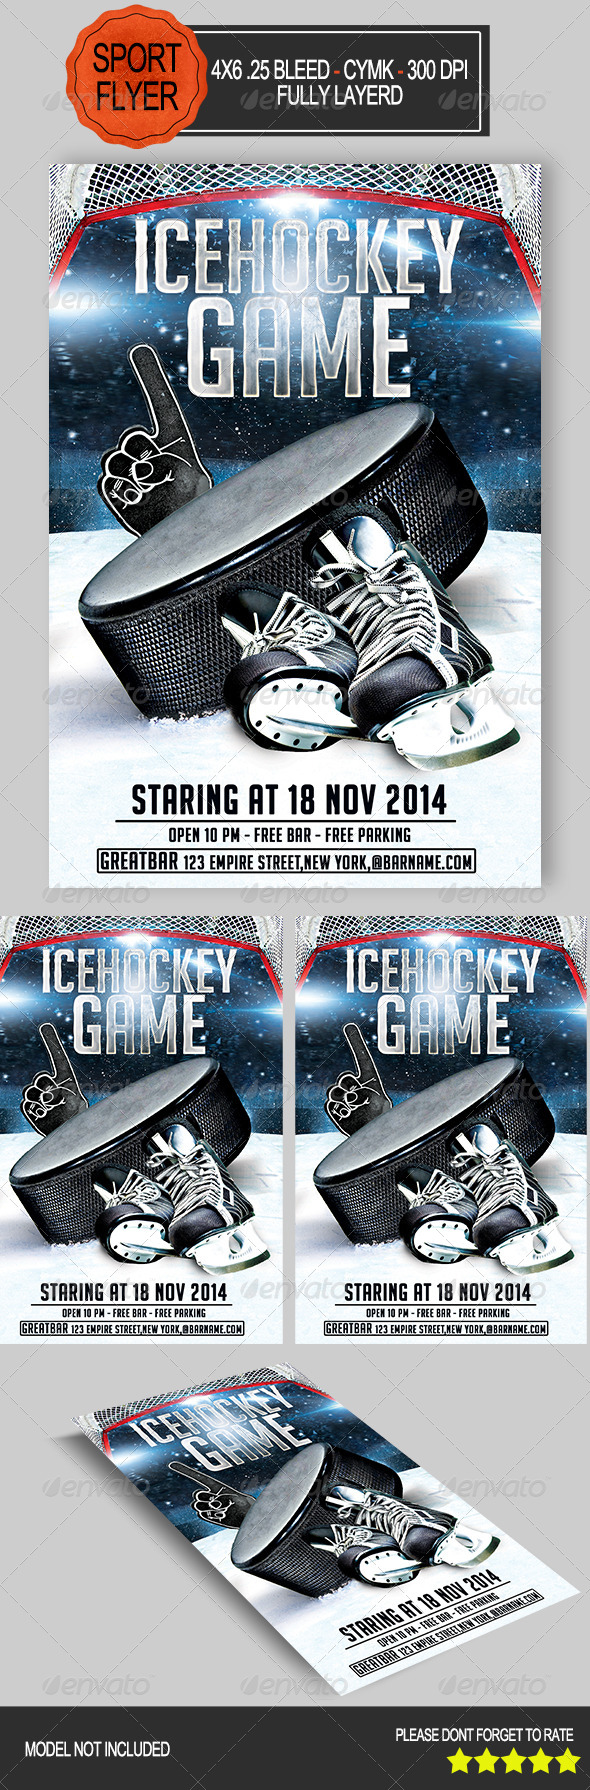 Ice Hockey Game Flyer   - Print Templates